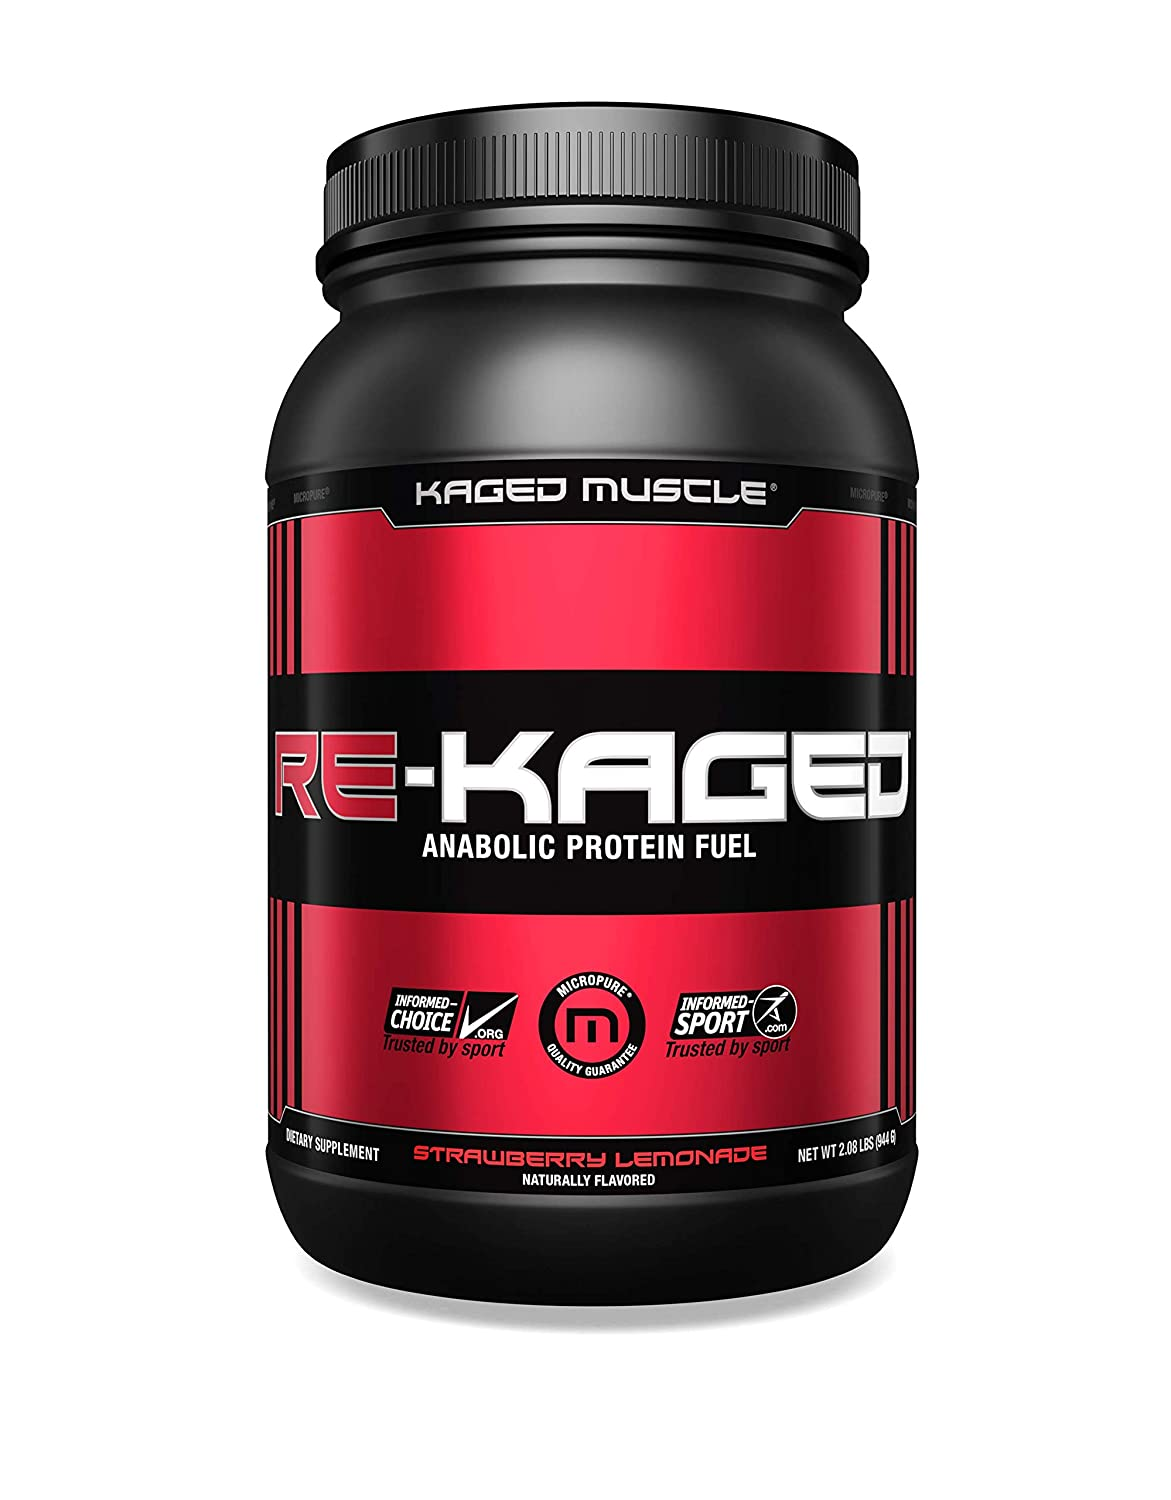 f7fe7e02f Amazon.com: KAGED MUSCLE, RE-KAGED Whey Protein Powder, Whey, Strawberry  Lemonade, Post Workout Recovery, BCAA's, EAA's, Creatine HCl, Glutamine,  Betaine, ...